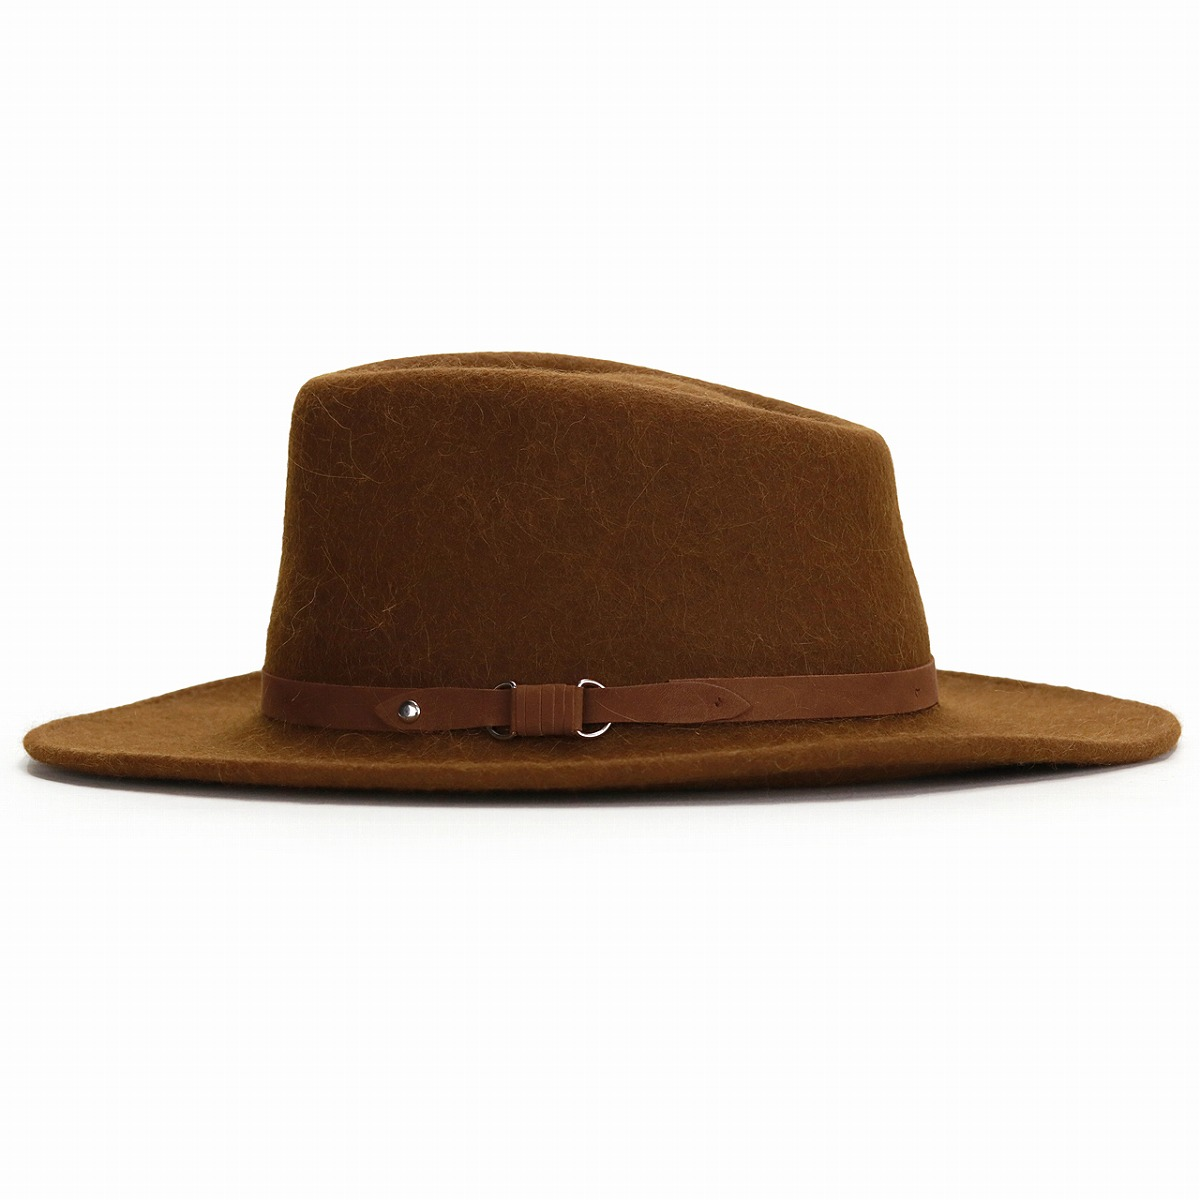 e5364907245 ... Suede belt camel  fedora  stetson hat mail order man hat Christmas gift  present with ...